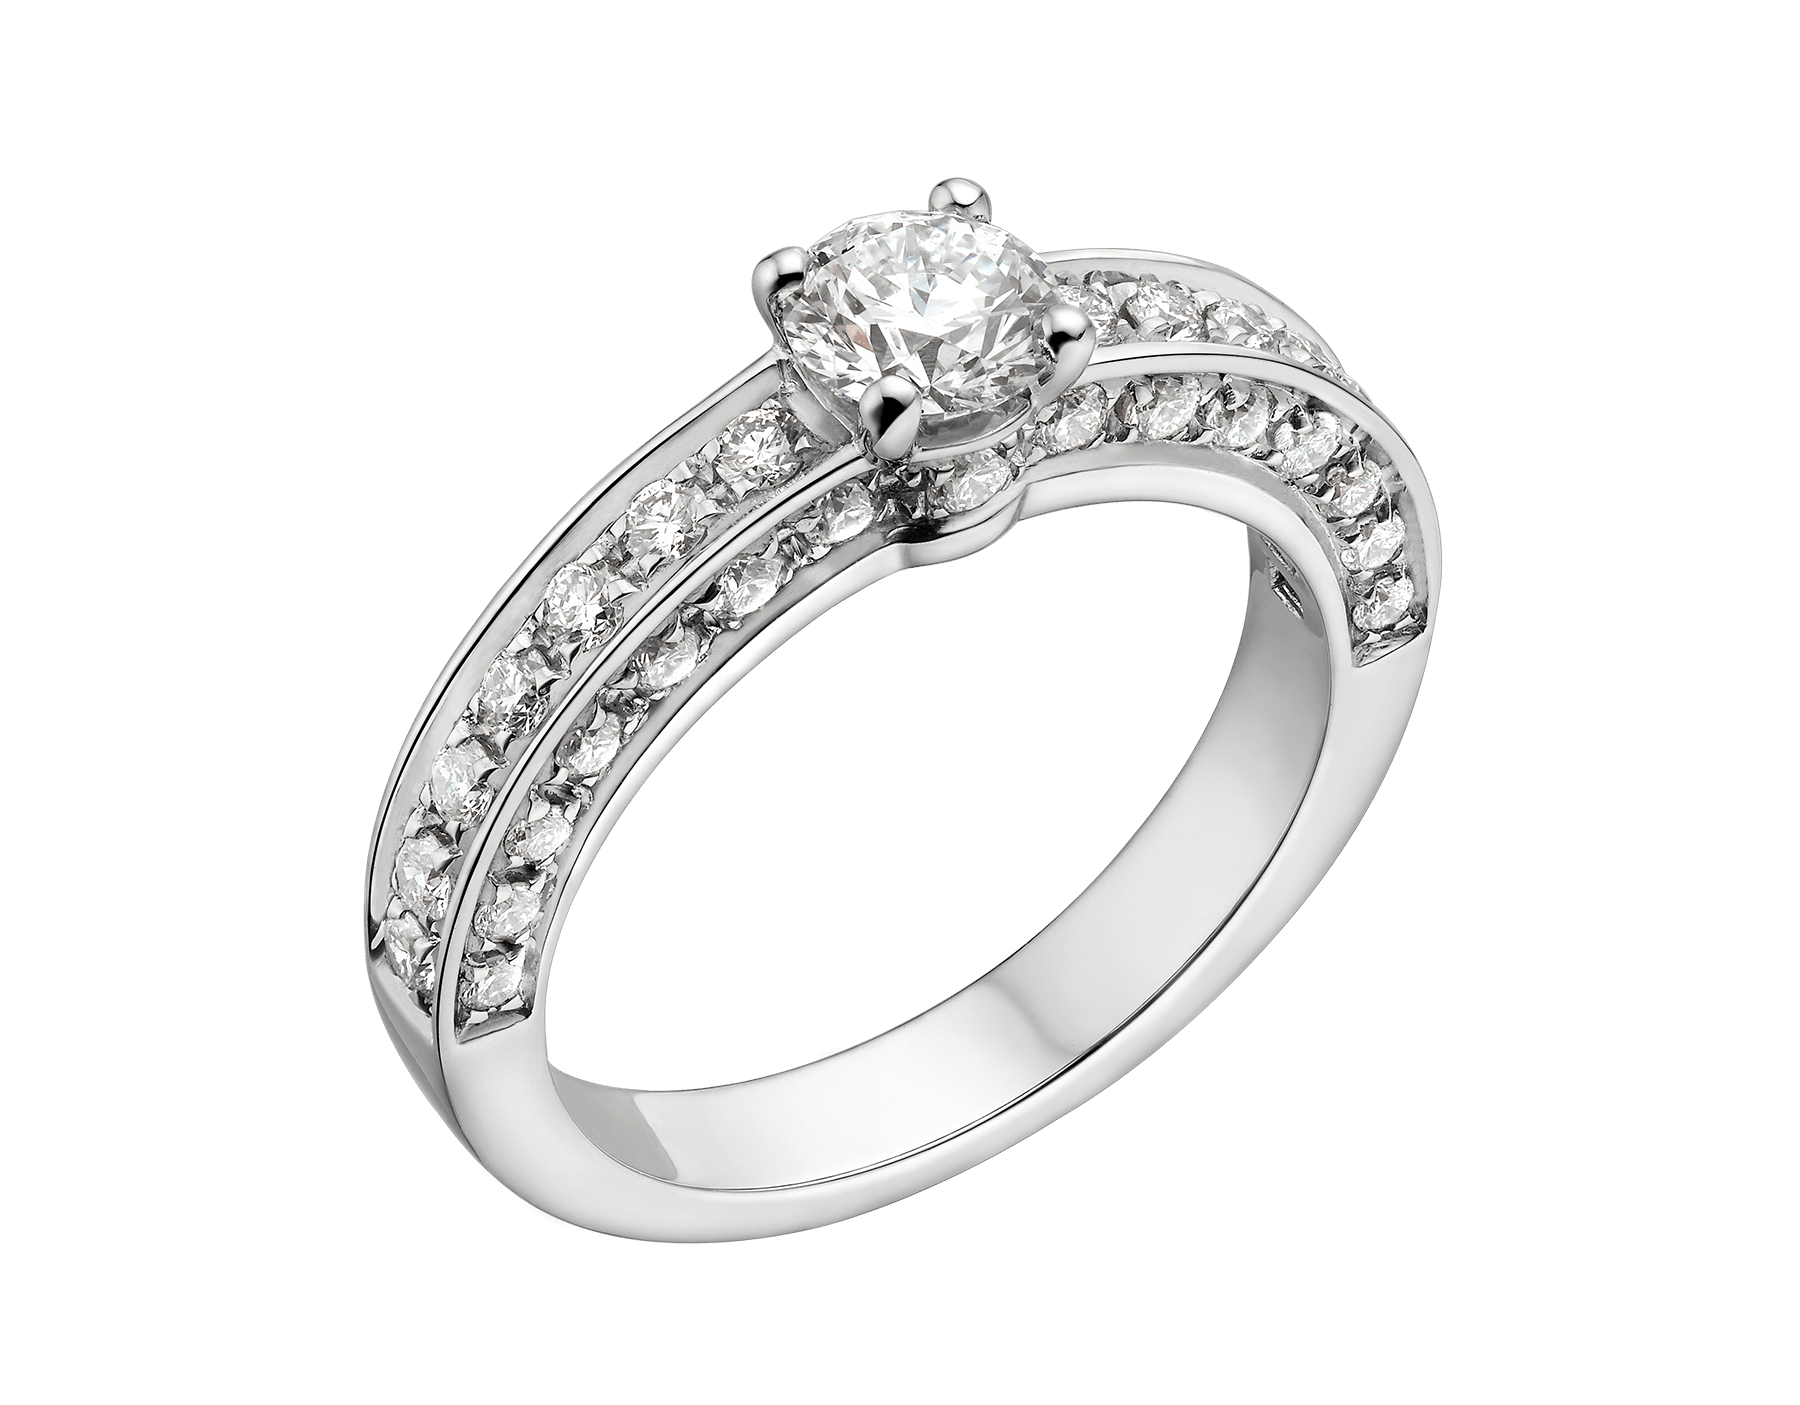 Dedicata a Venezia: 1503 solitaire ring in platinum with round brilliant cut diamond and pavé diamonds. Available from 0.30 ct. Named after the year in which the first engagement ring was exchanged in Venice. 344008 image 1